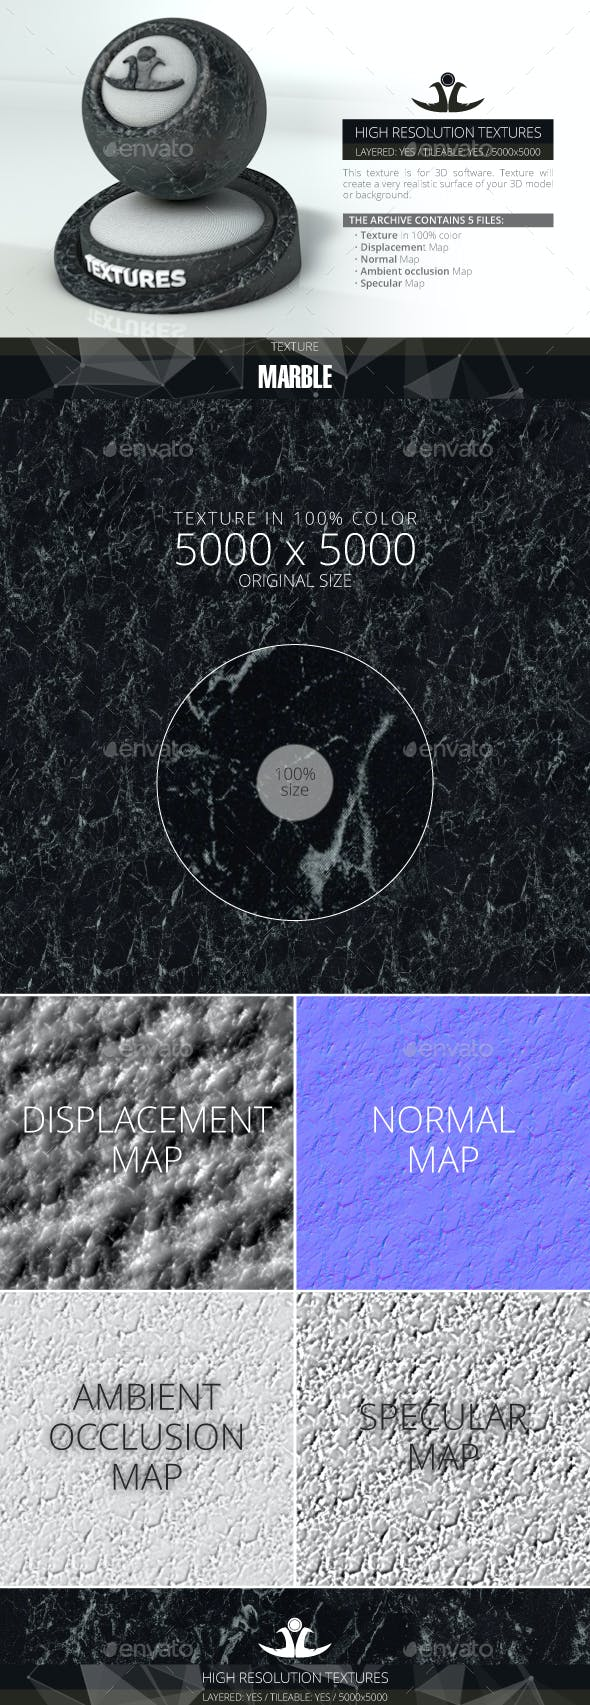 Marble 2 - 3DOcean Item for Sale